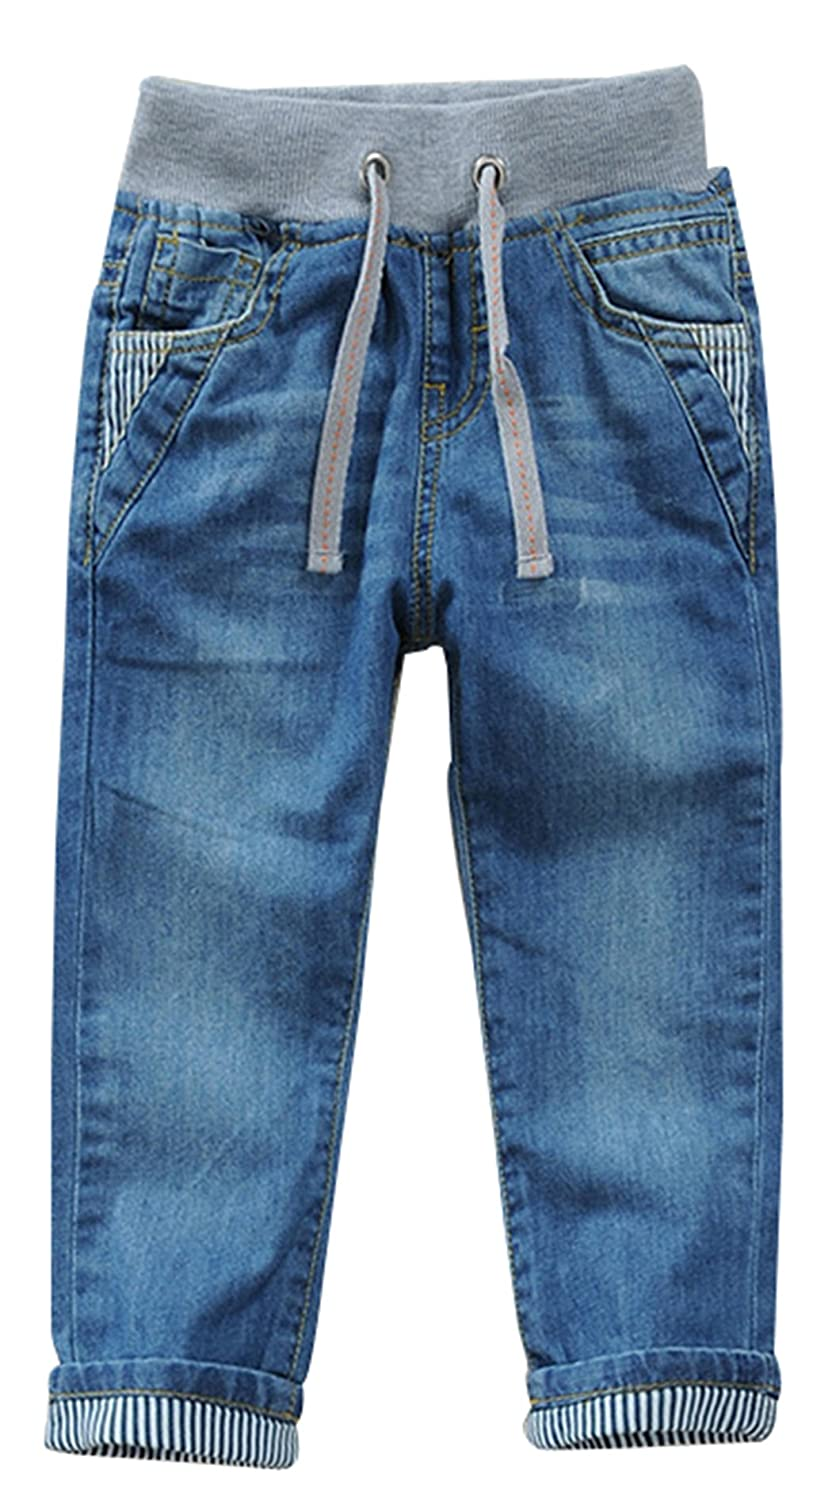 jiayou Boys Kids Drawstring Elastic Mid Waist Full Length Straight Pants Denim Jeans USMK023